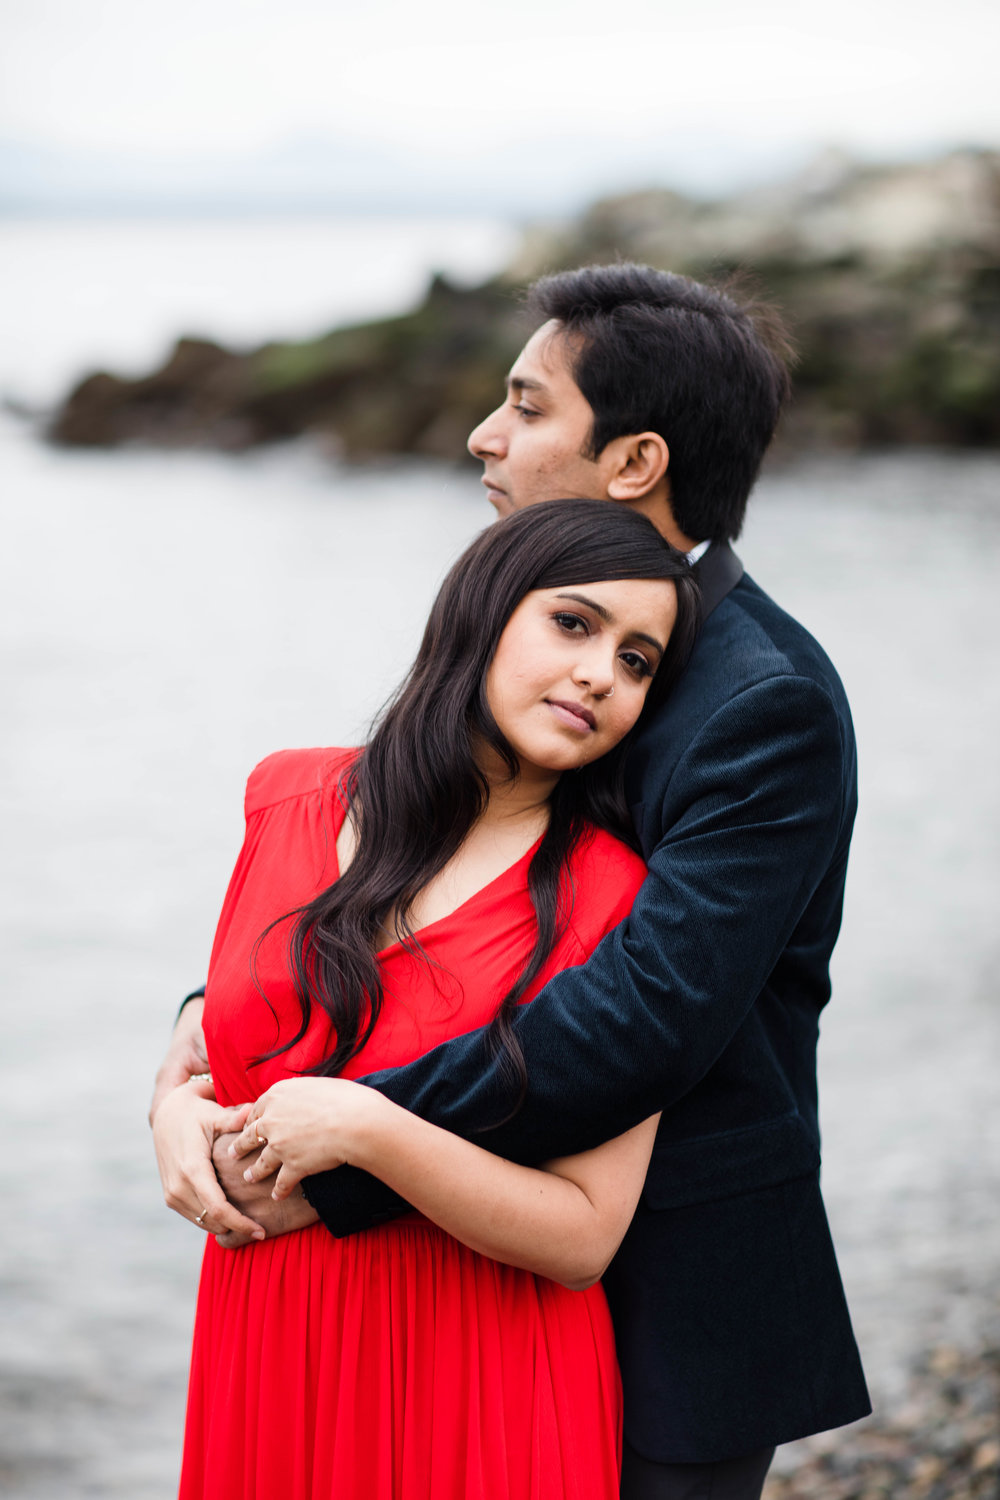 Sushat+Nancy_Engagement_Pioneer+Square_Sculpture+Park_Seattle_Oct2016_APW539.jpg